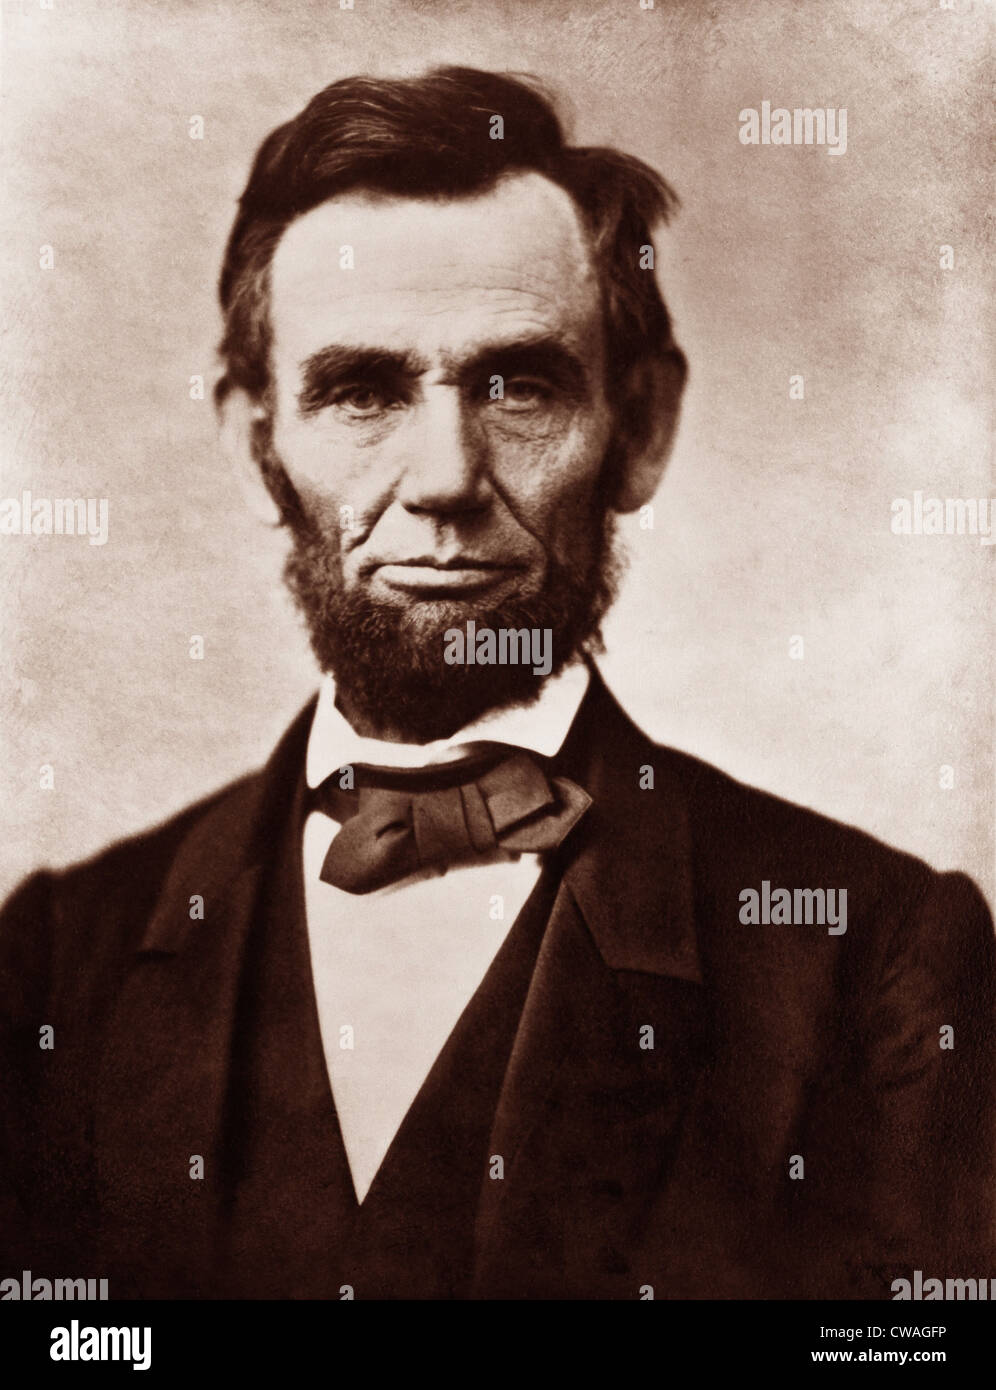 Abraham Lincoln (1809-1856) in the classic 1863 portrait photograph by Alexander Gardner. - Stock Image